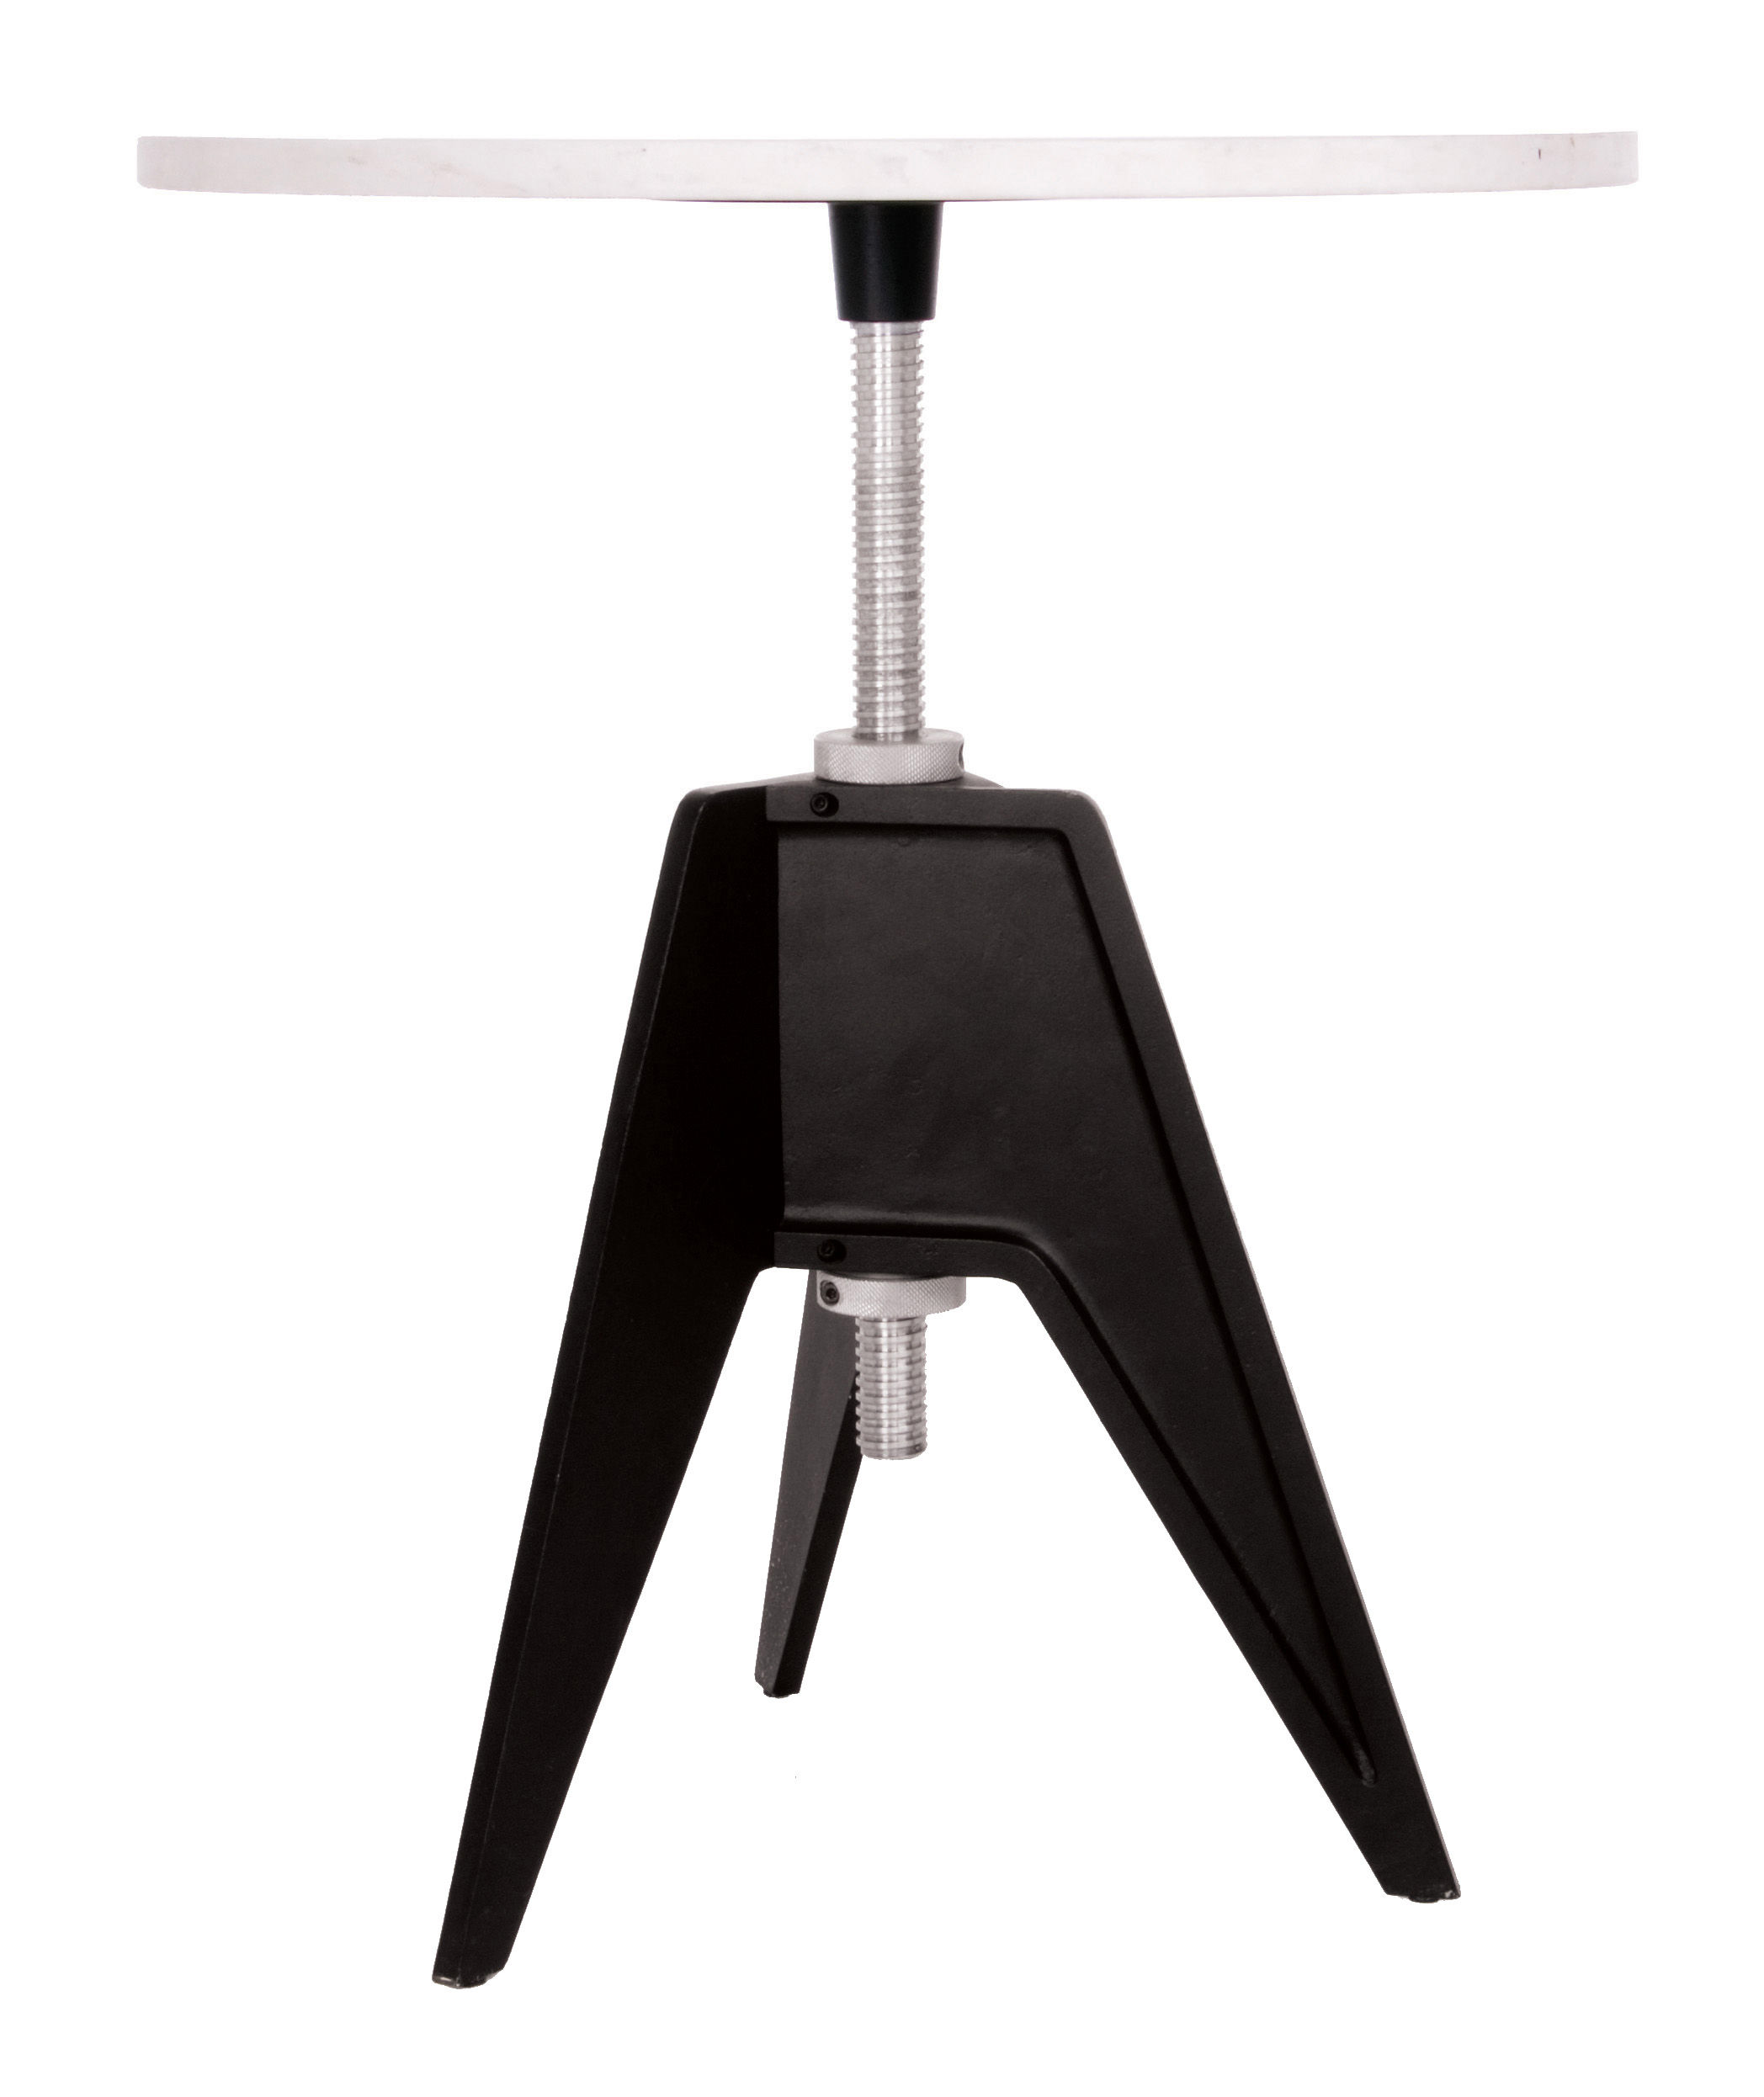 table hauteur r glable screw 60 cm 60 cm noir blanc tom dixon. Black Bedroom Furniture Sets. Home Design Ideas